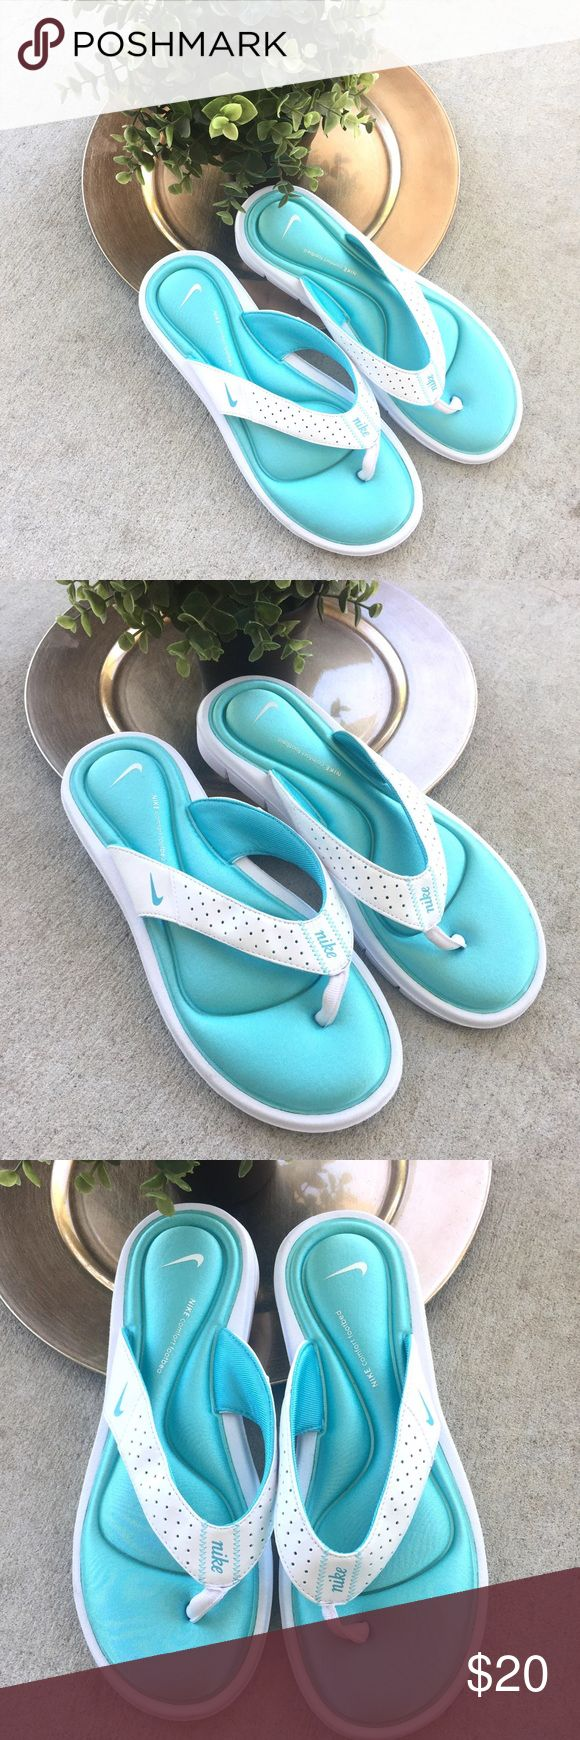 Nike Tiffany Blue & White Flip Flops Nike Comfort Footbed Tiffany Blue & White Thong Sandals Memory Foam  Size 9 Womens Excellent preowned condition Nike Shoes Sandals